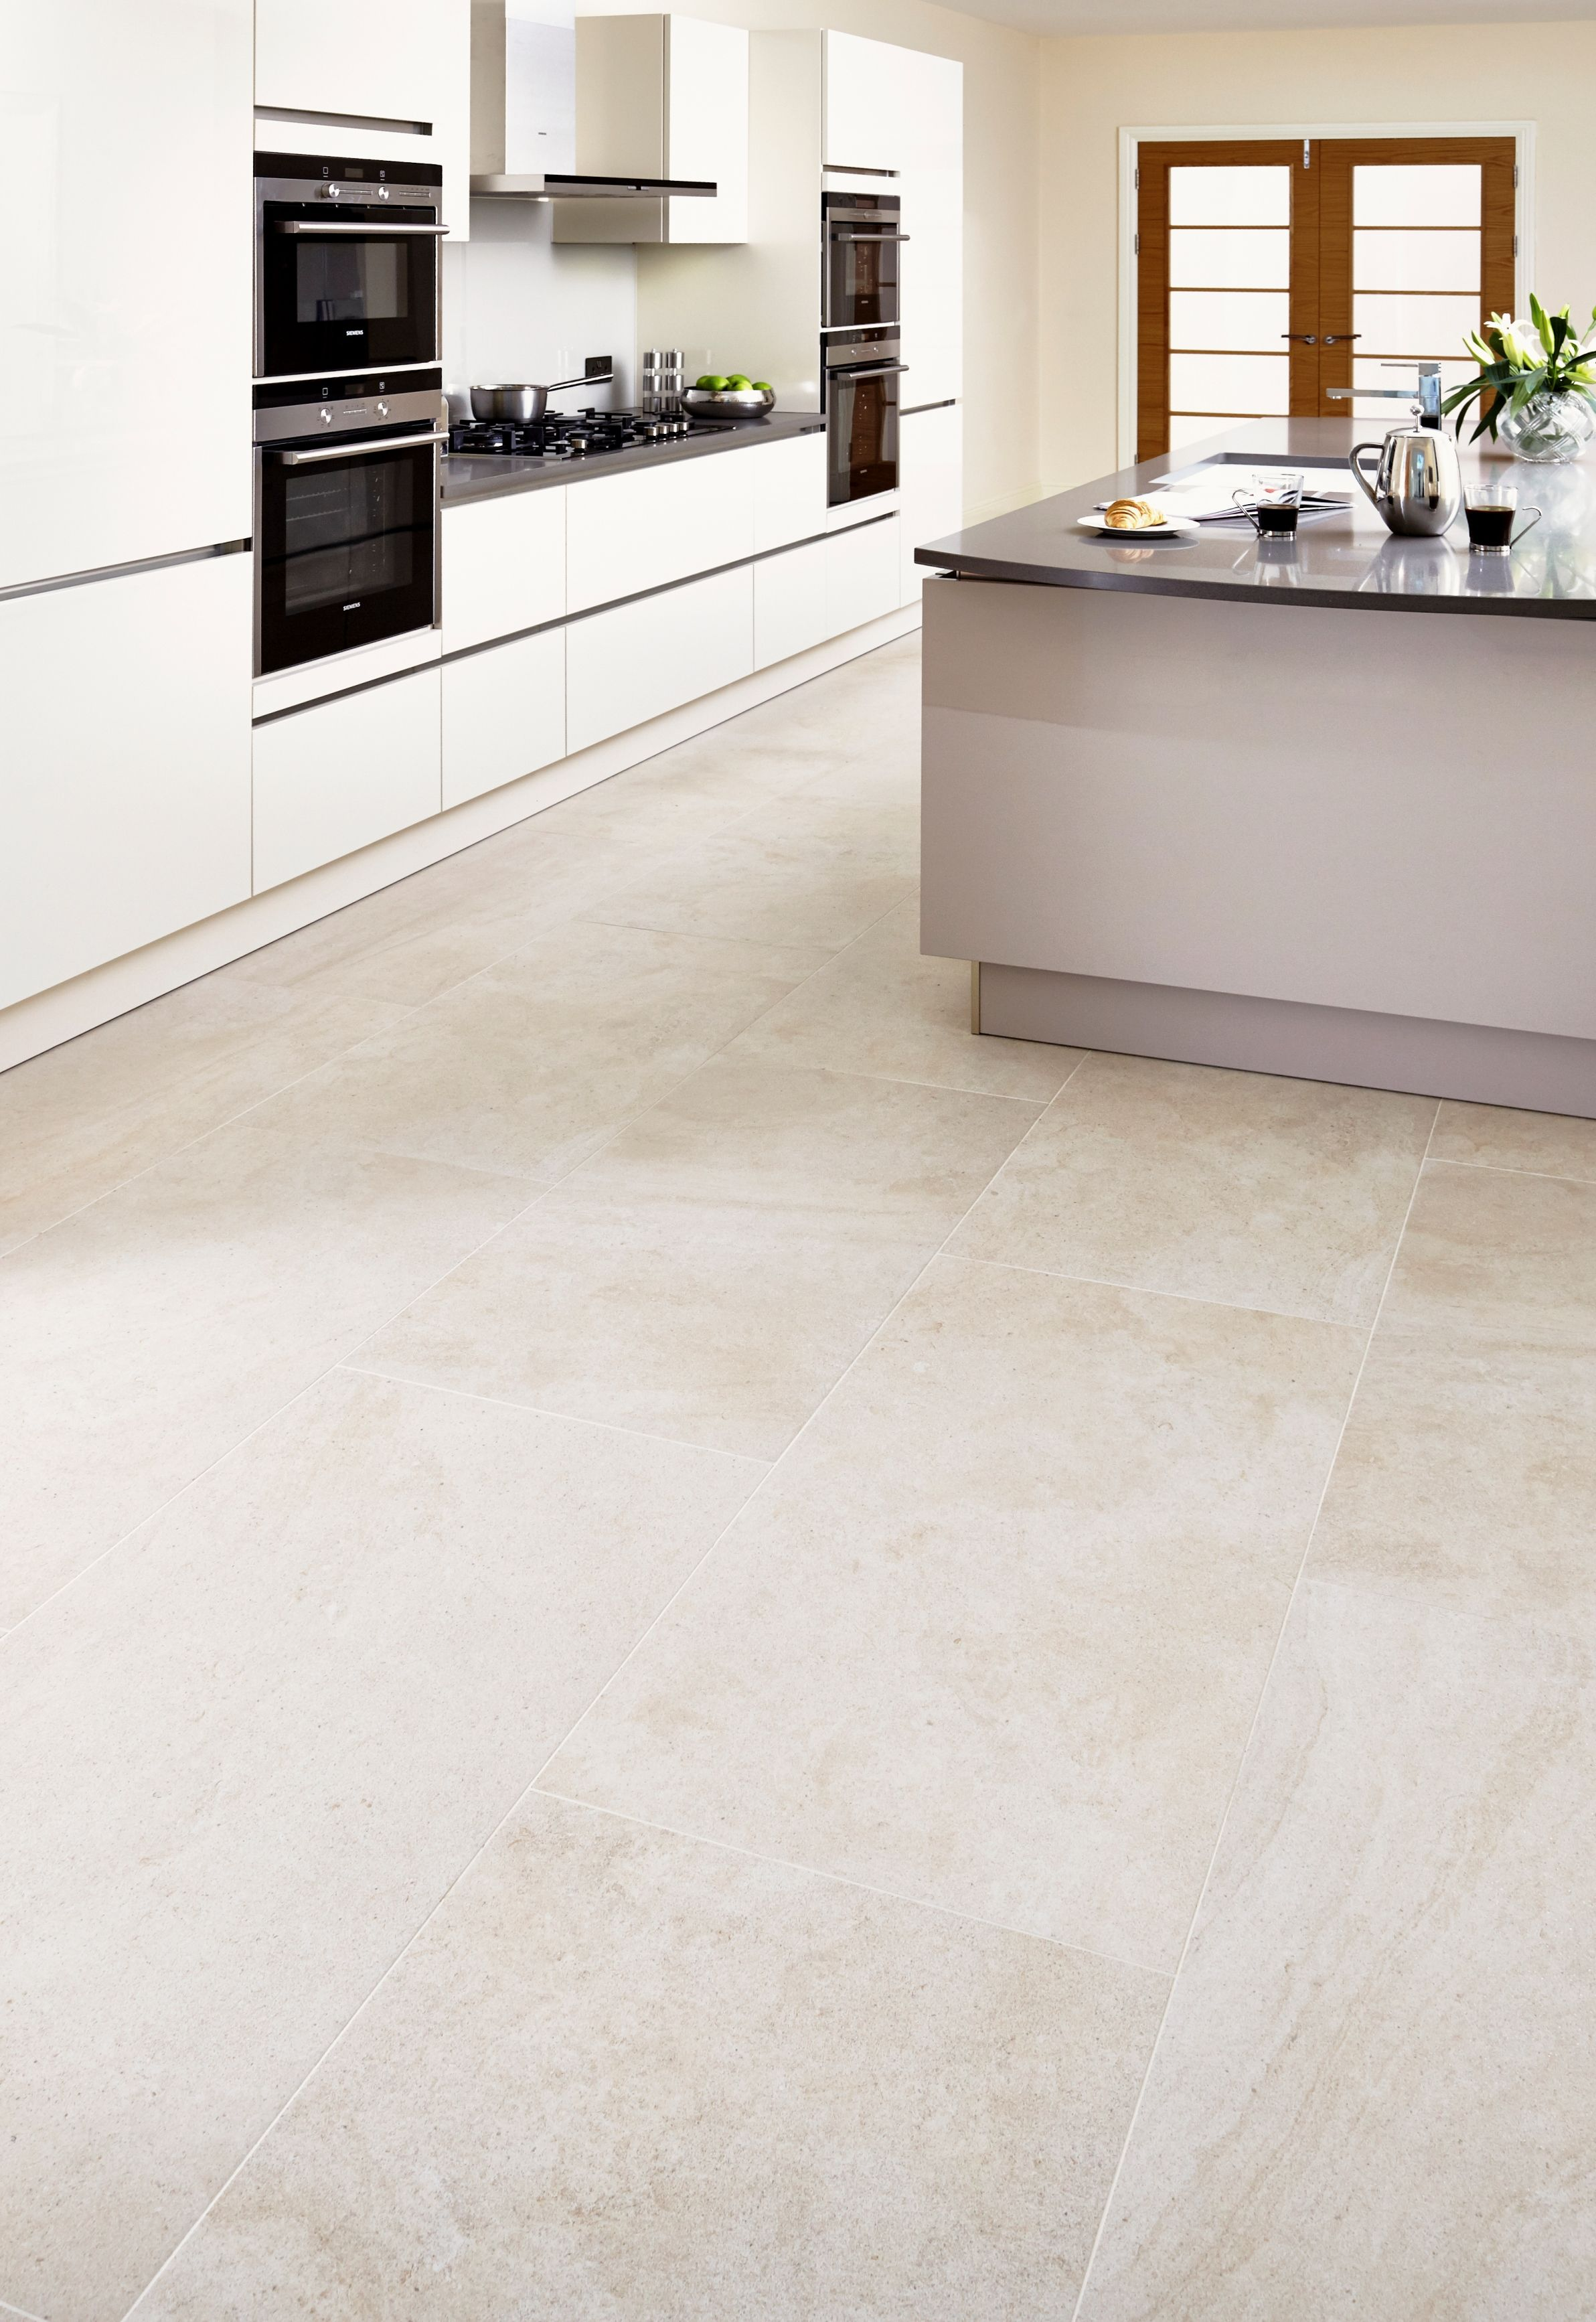 Limestone Matt Almond Floor Tiles Are Perfect For The Kitchen From